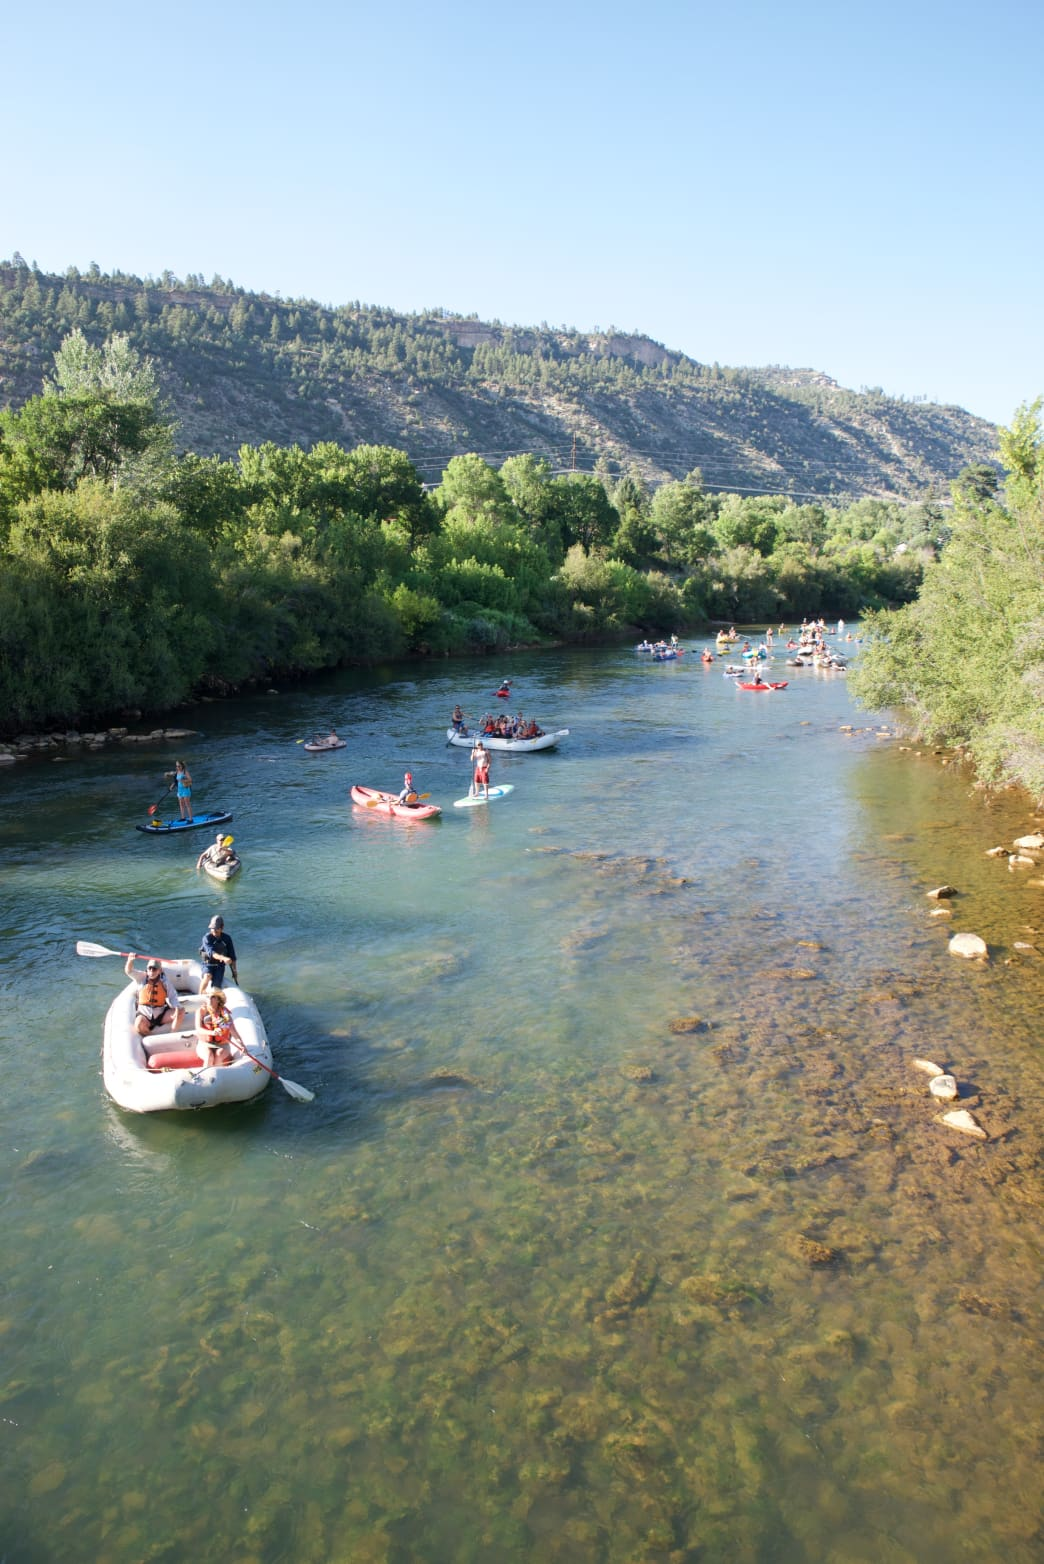 Outfitters can help visitors enjoy a float trip down the Animas in Durango.